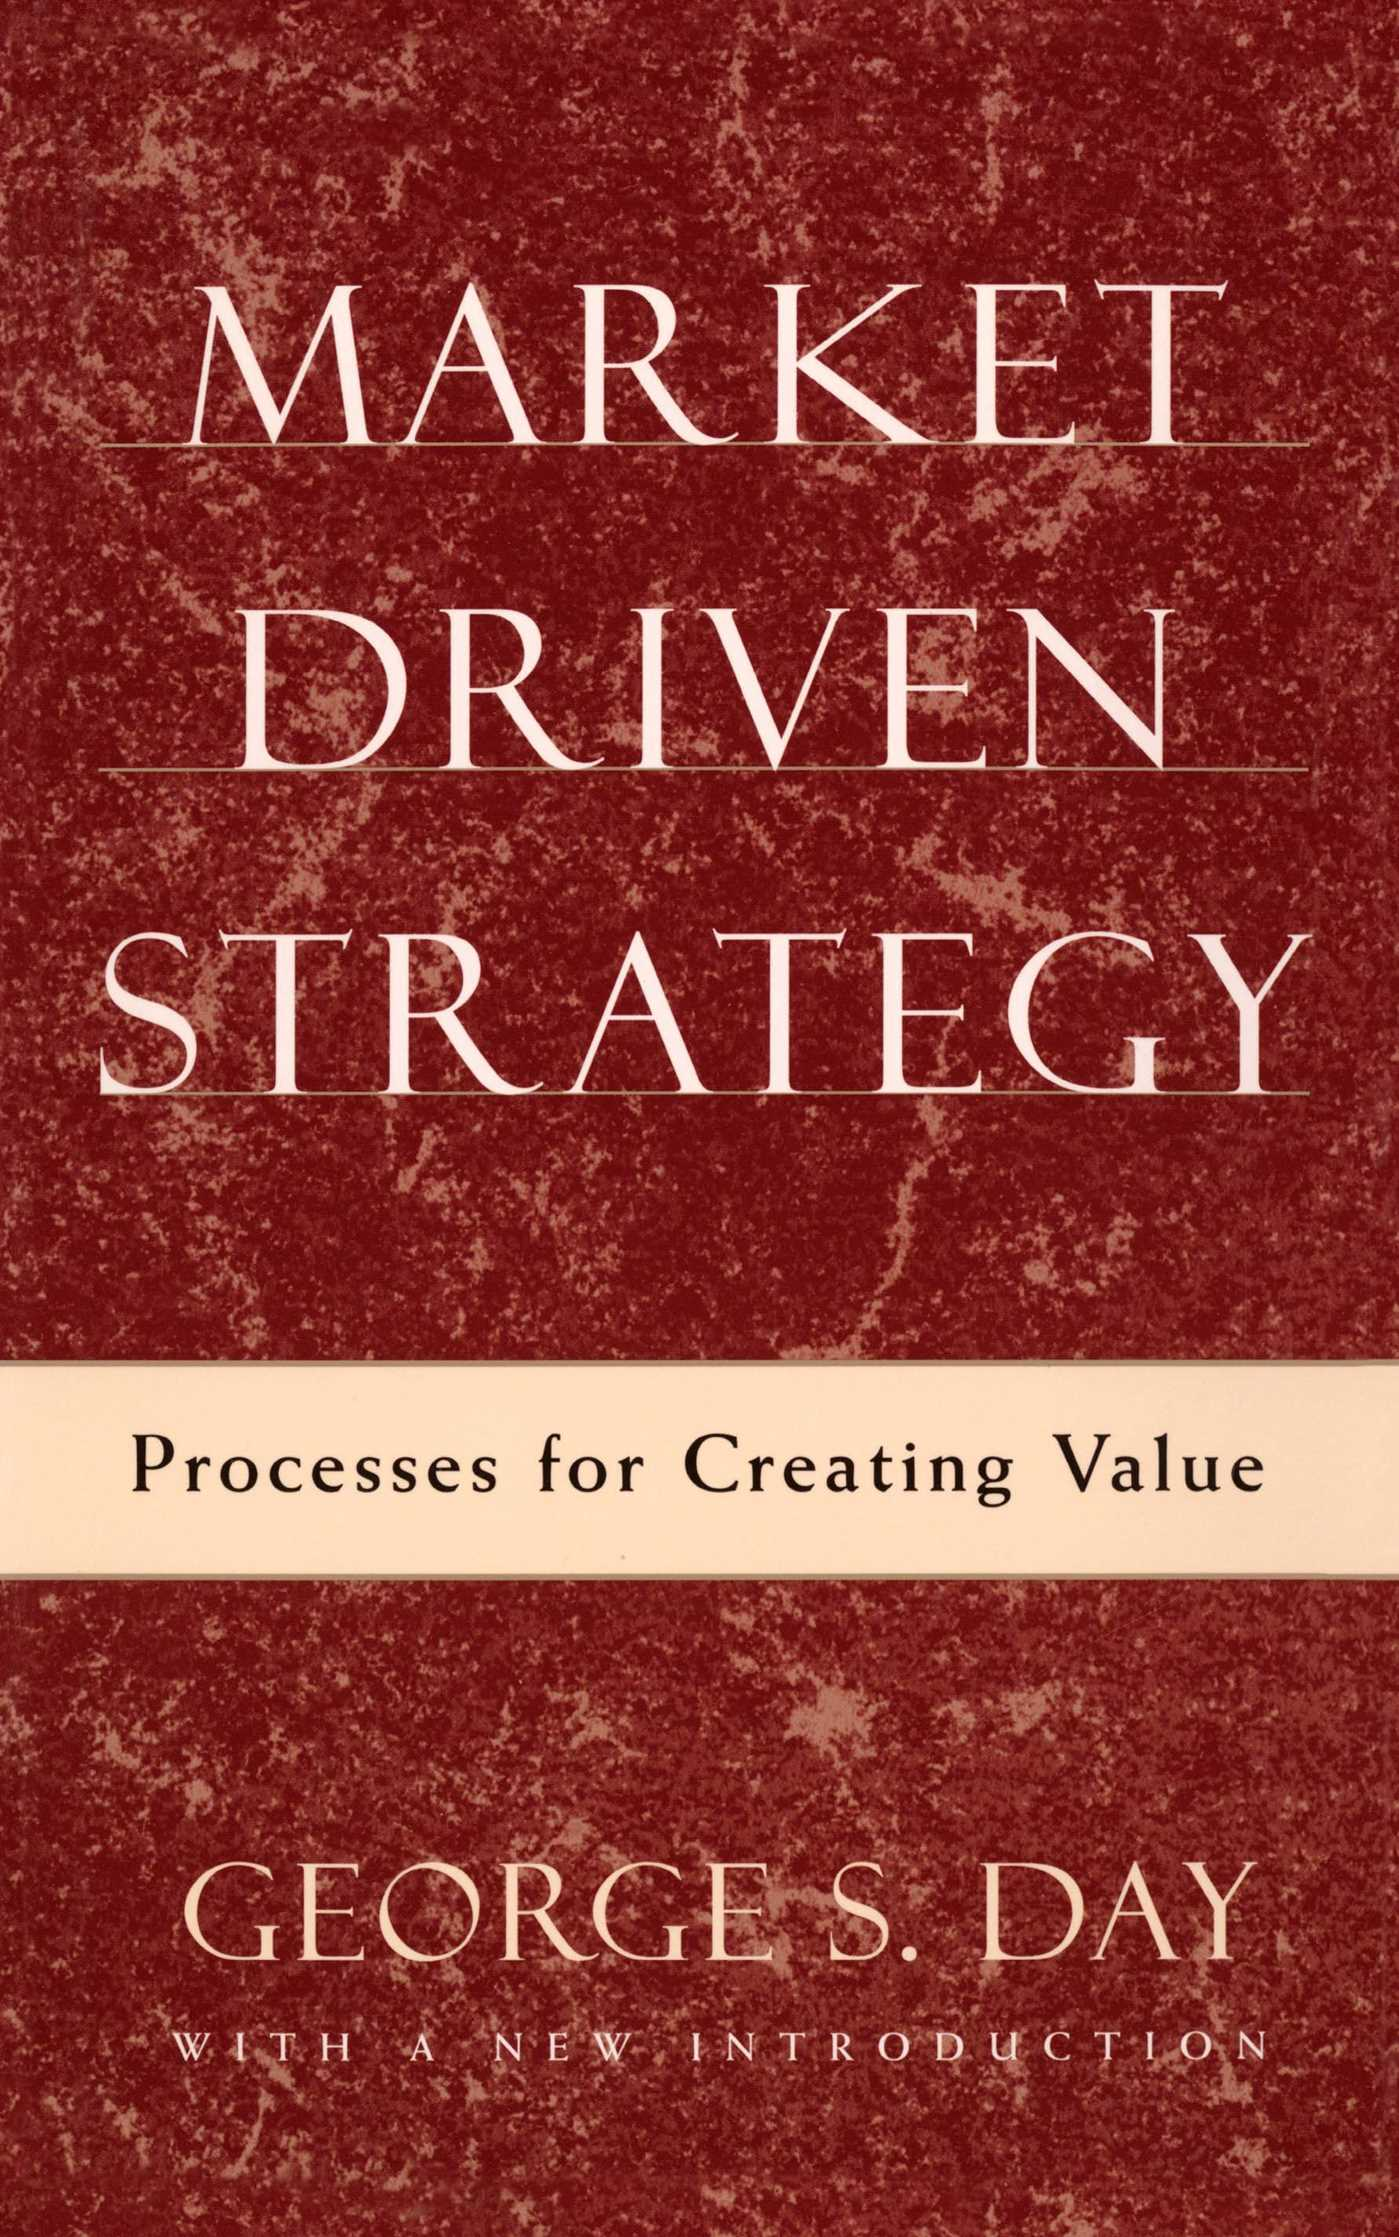 Market-driven-strategy-9781501100178_hr